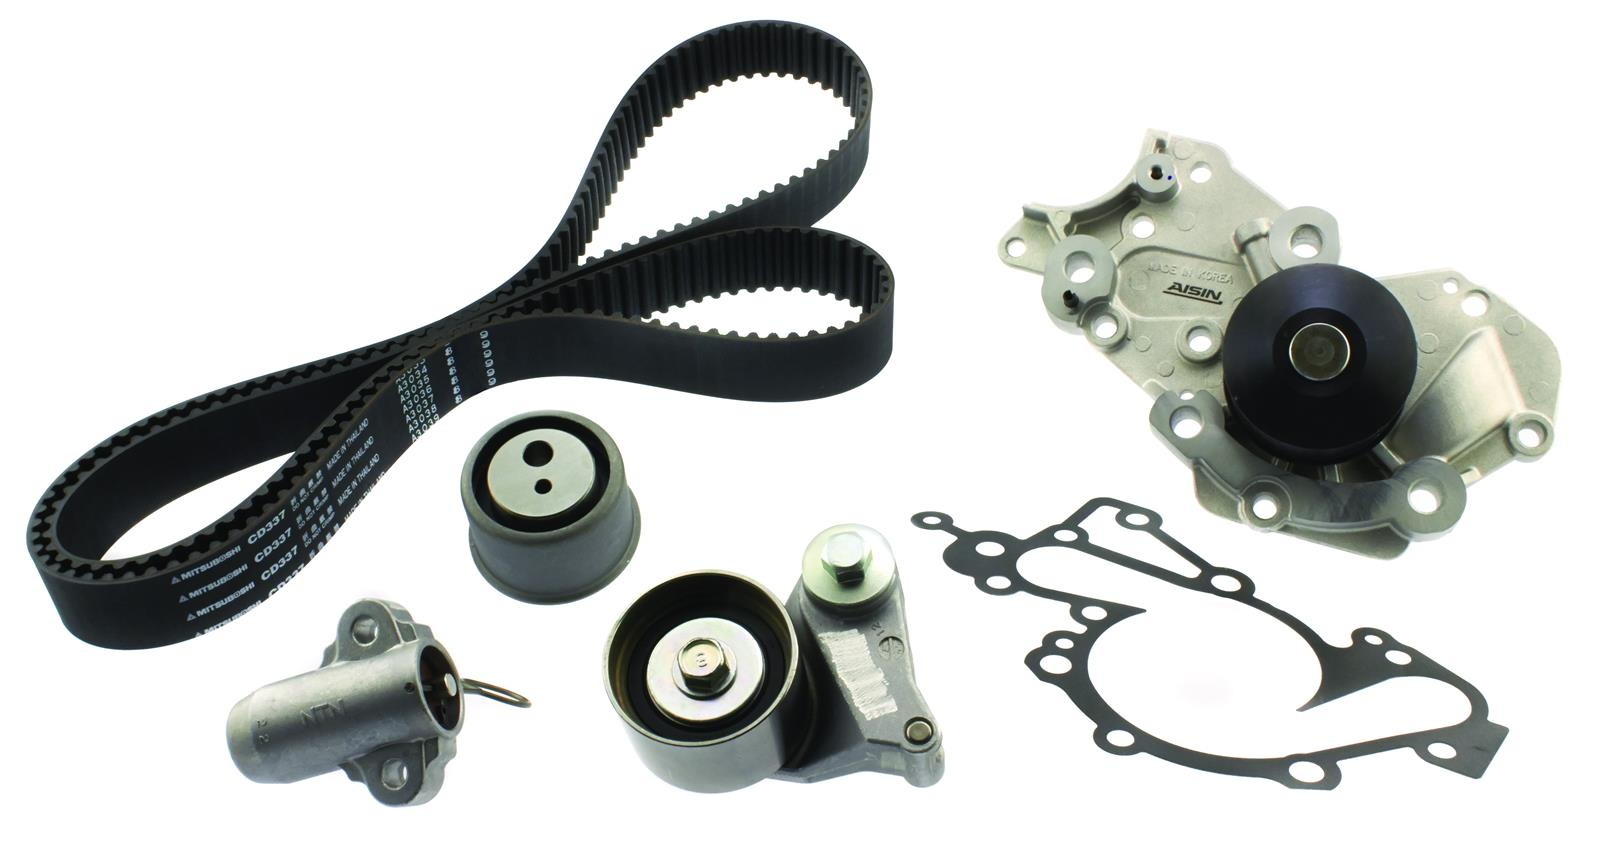 Kia Timing Belt Tensioner Tool